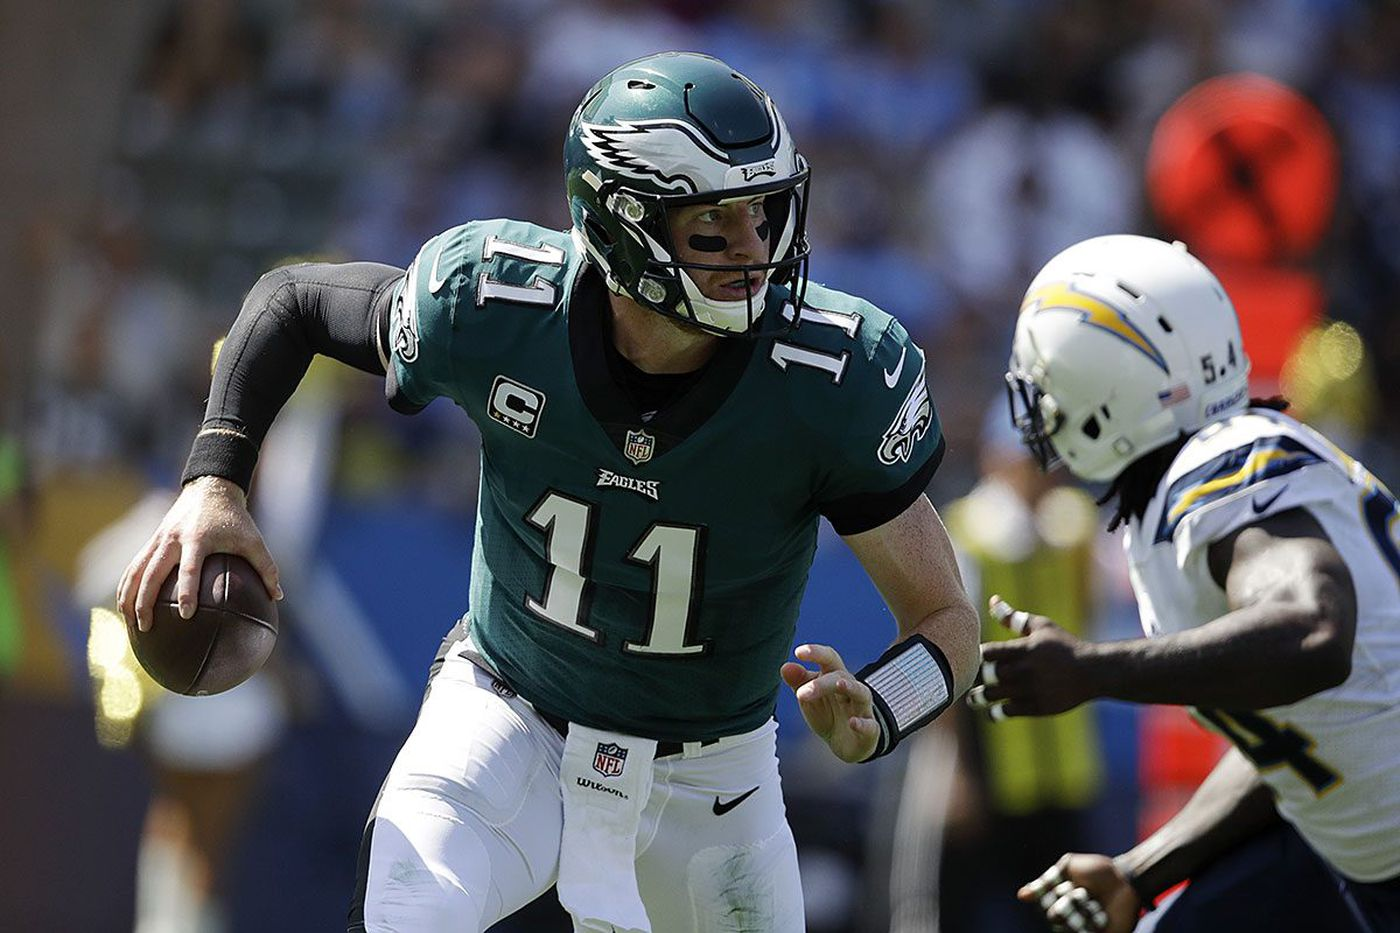 Carson Wentz makes himself at home, directs win with smart effort